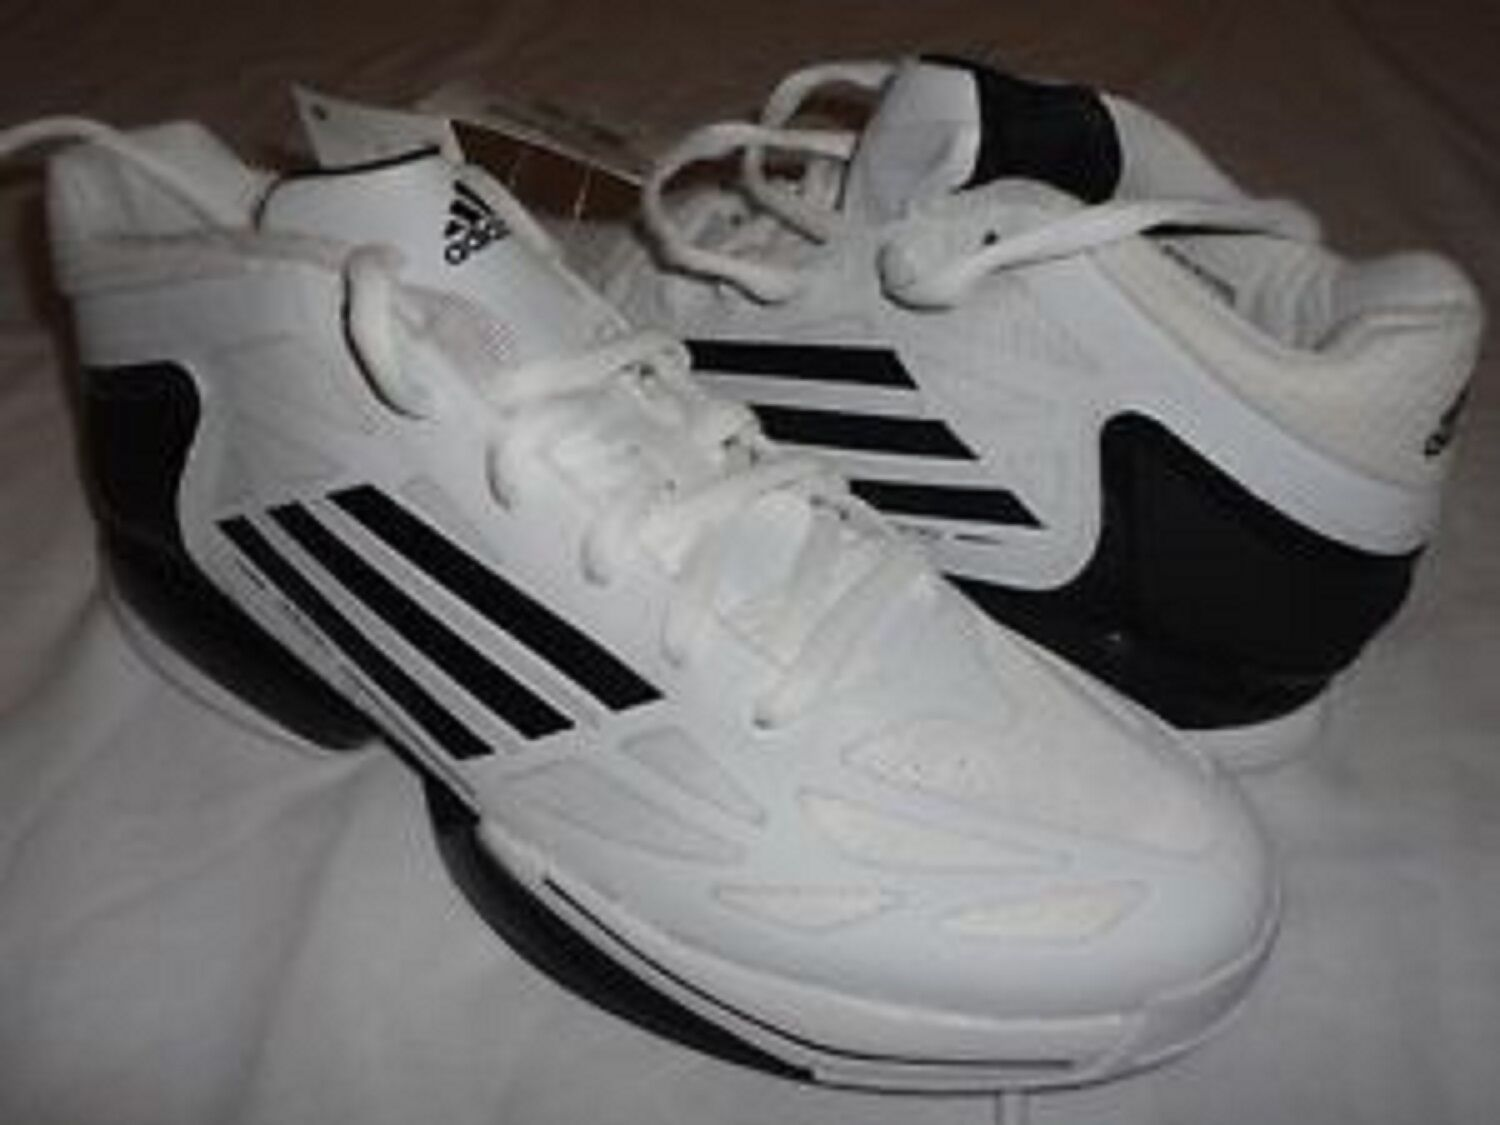 P New Adidas Q32698 SMU ADIZERO CRAZY LIGHT Basketball Shoes WHT/BLK Price reduction Comfortable and good-looking